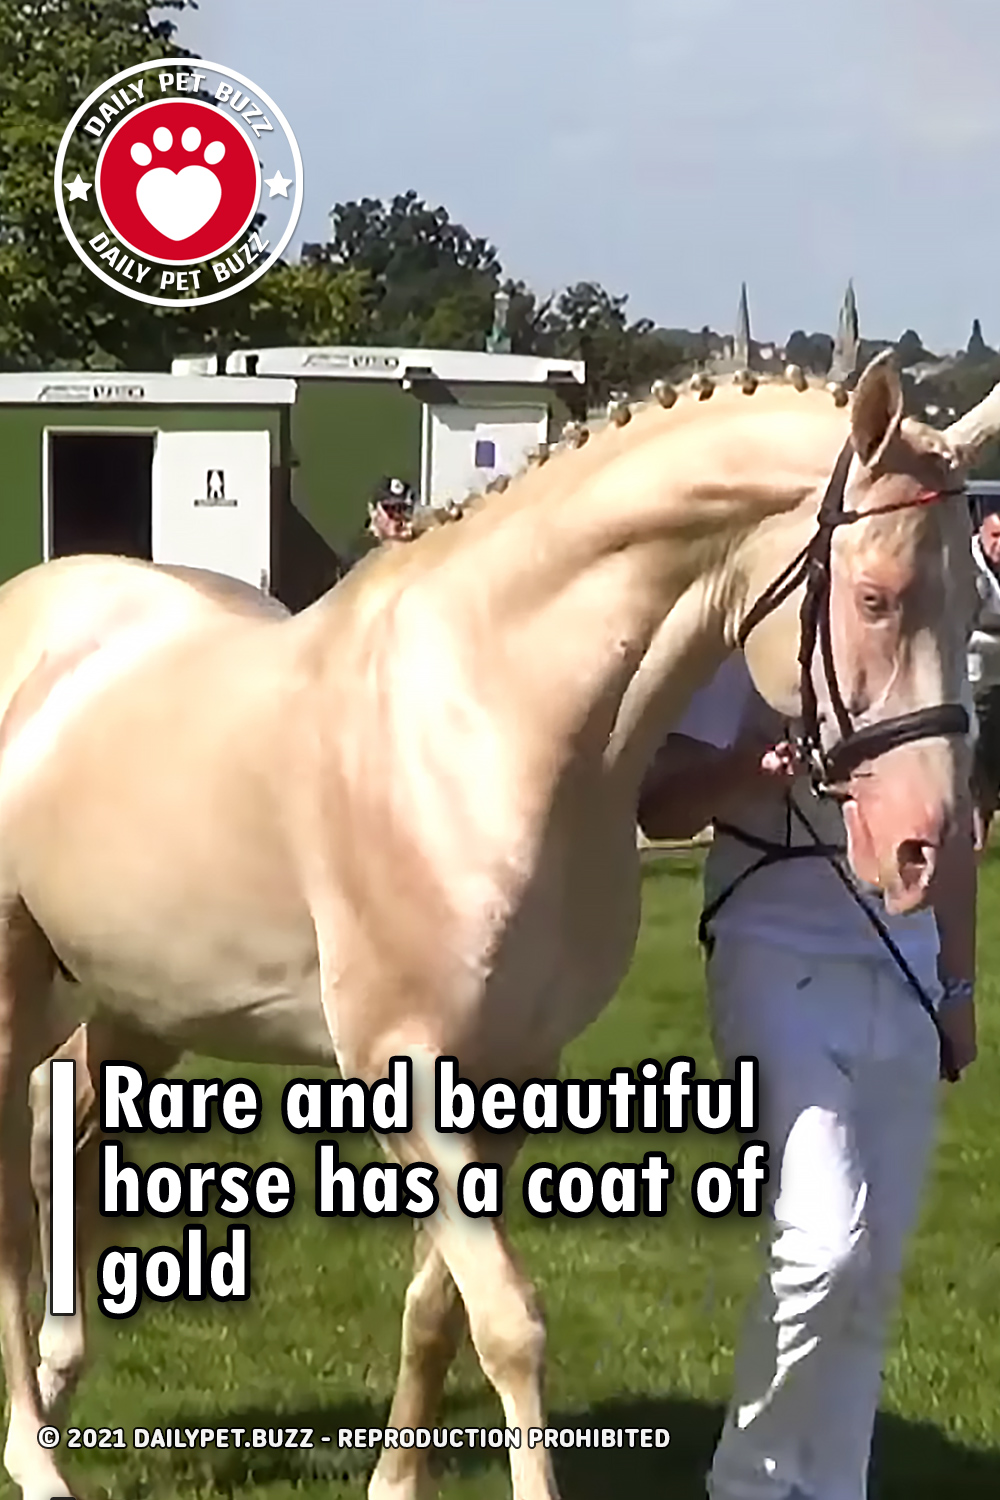 Rare and beautiful horse has a coat of gold